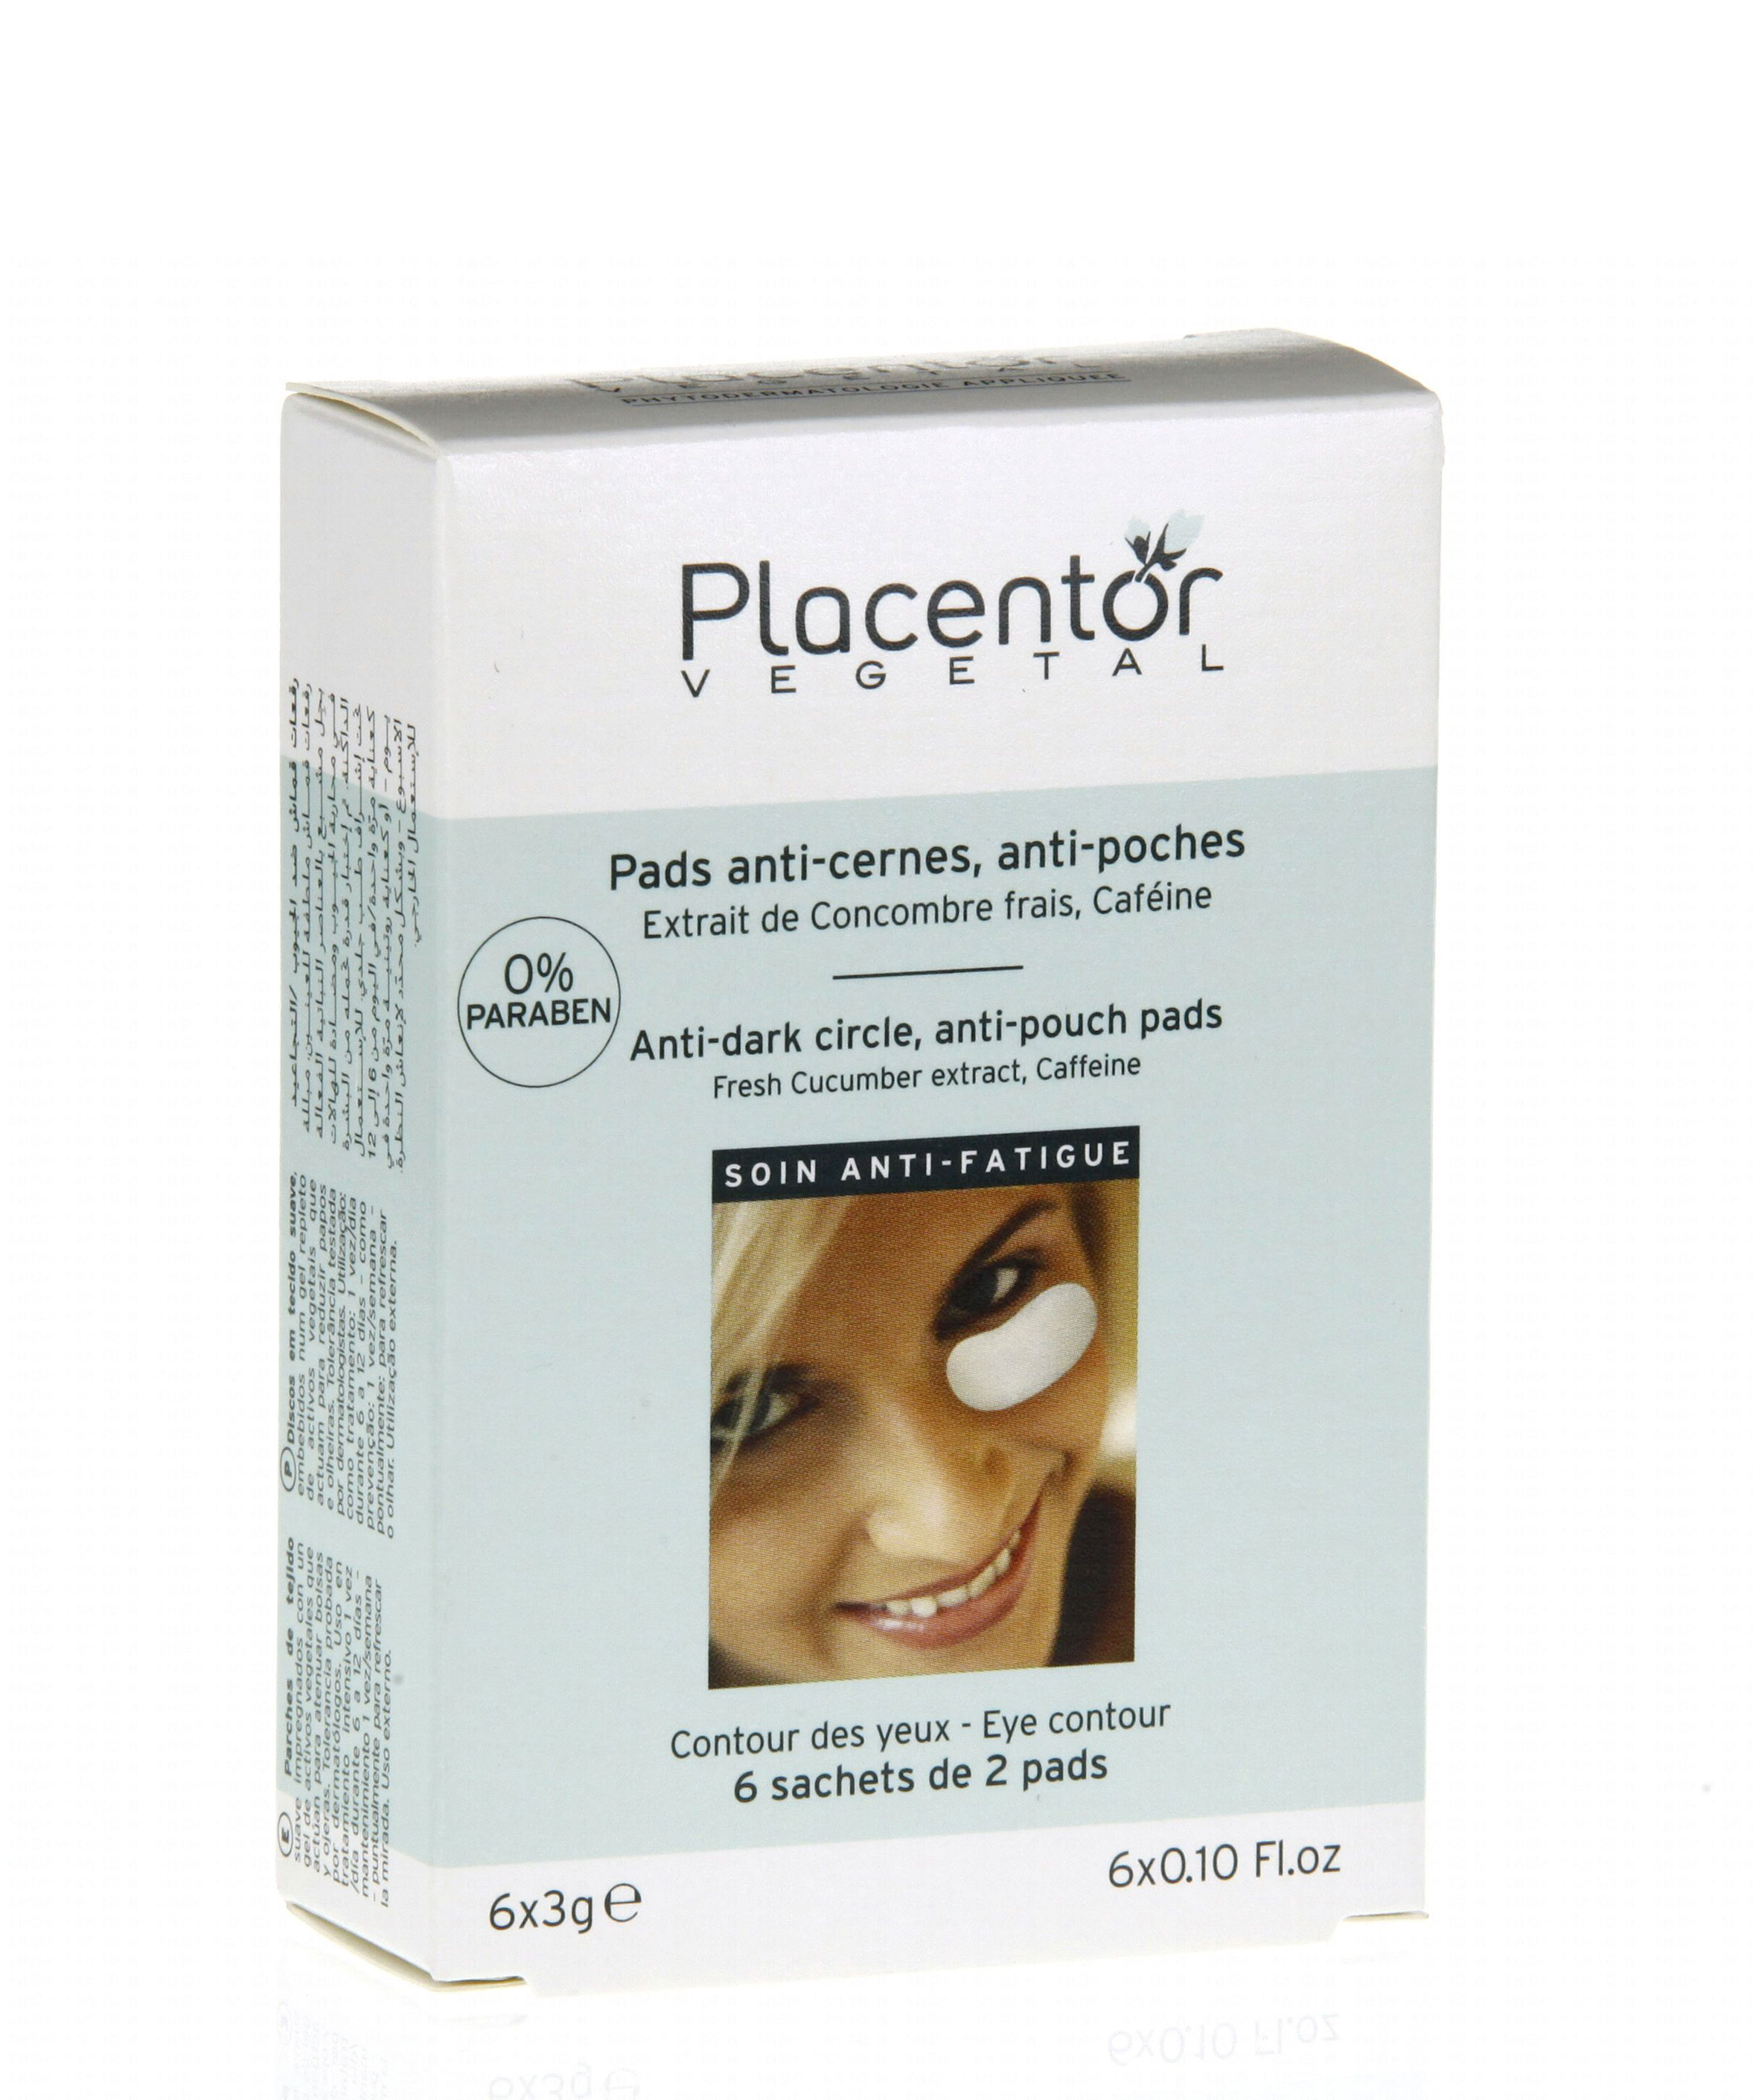 PLACENTOR VEGETAL PADS ANTI-CERNES/ANTI-POCHES